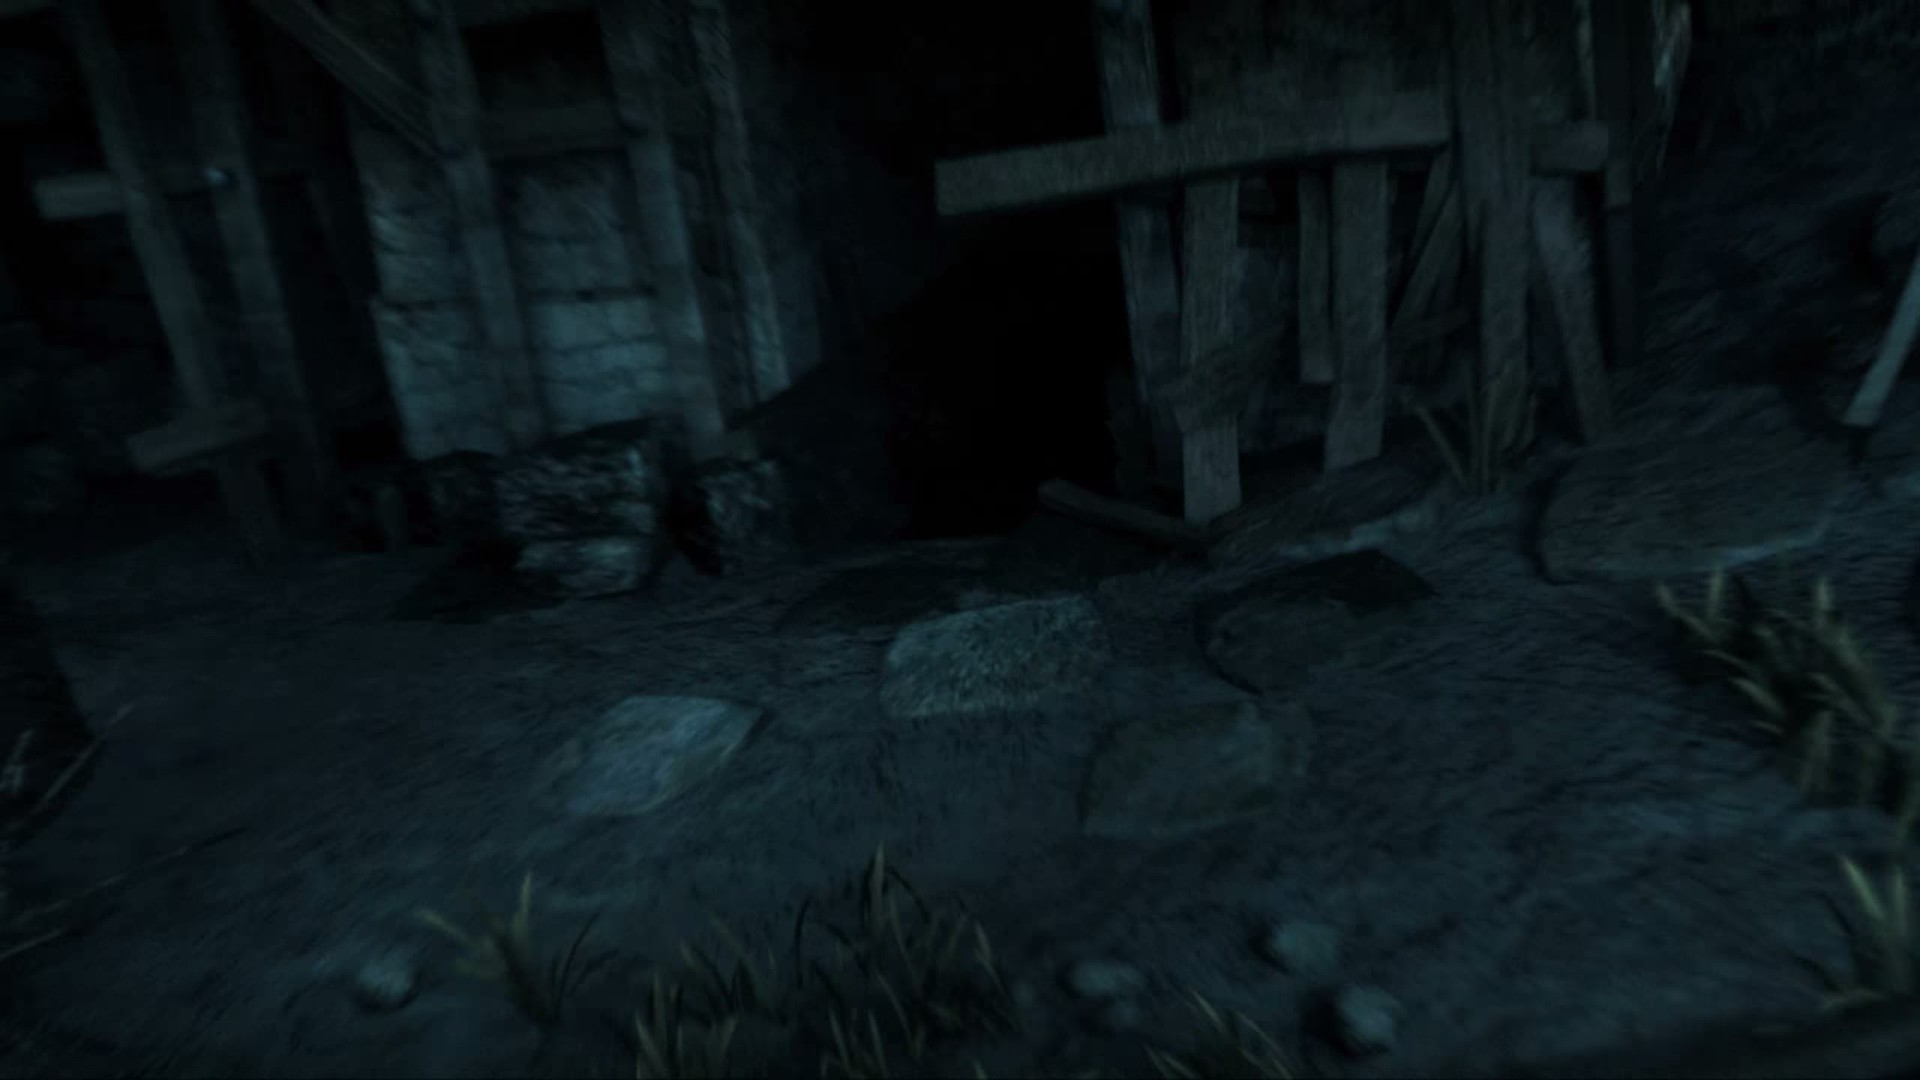 20171028180319_1.jpg - Witcher, the